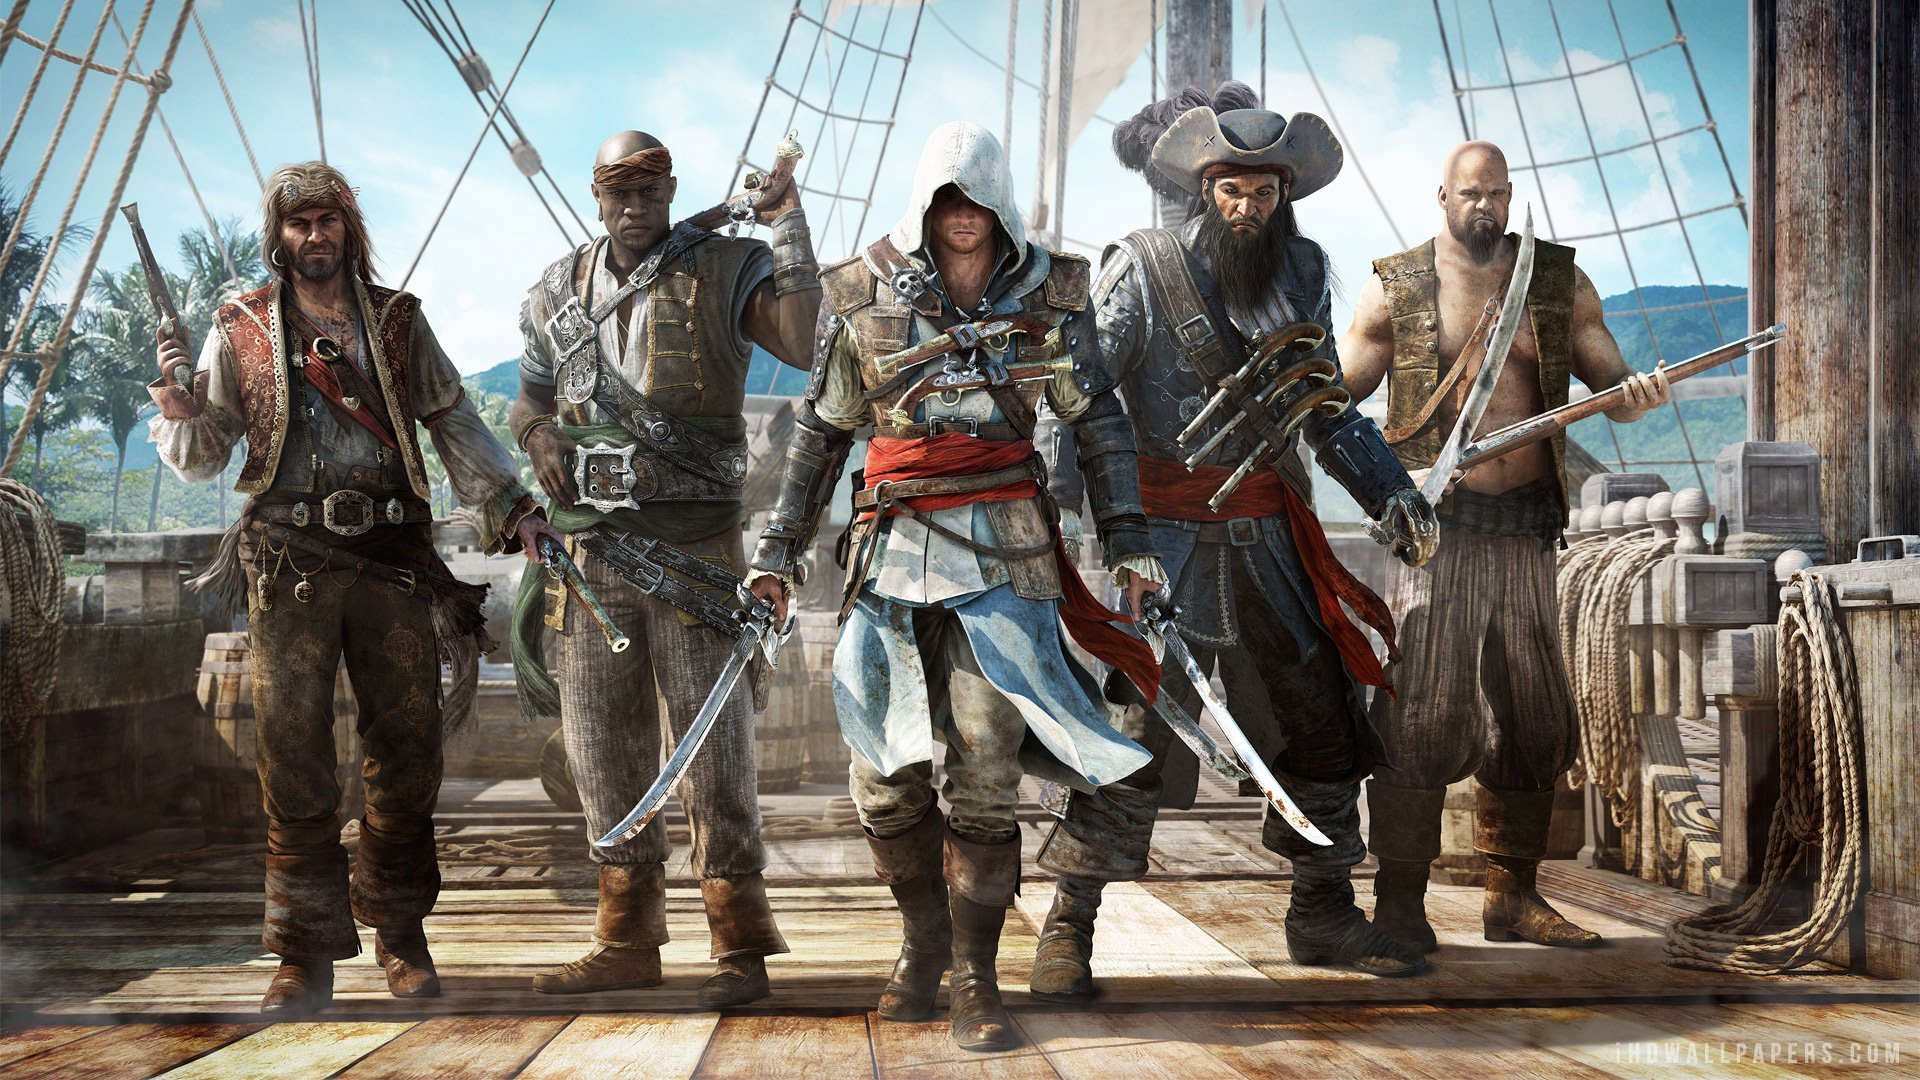 The Top 5 Best Pirate Games of All Time